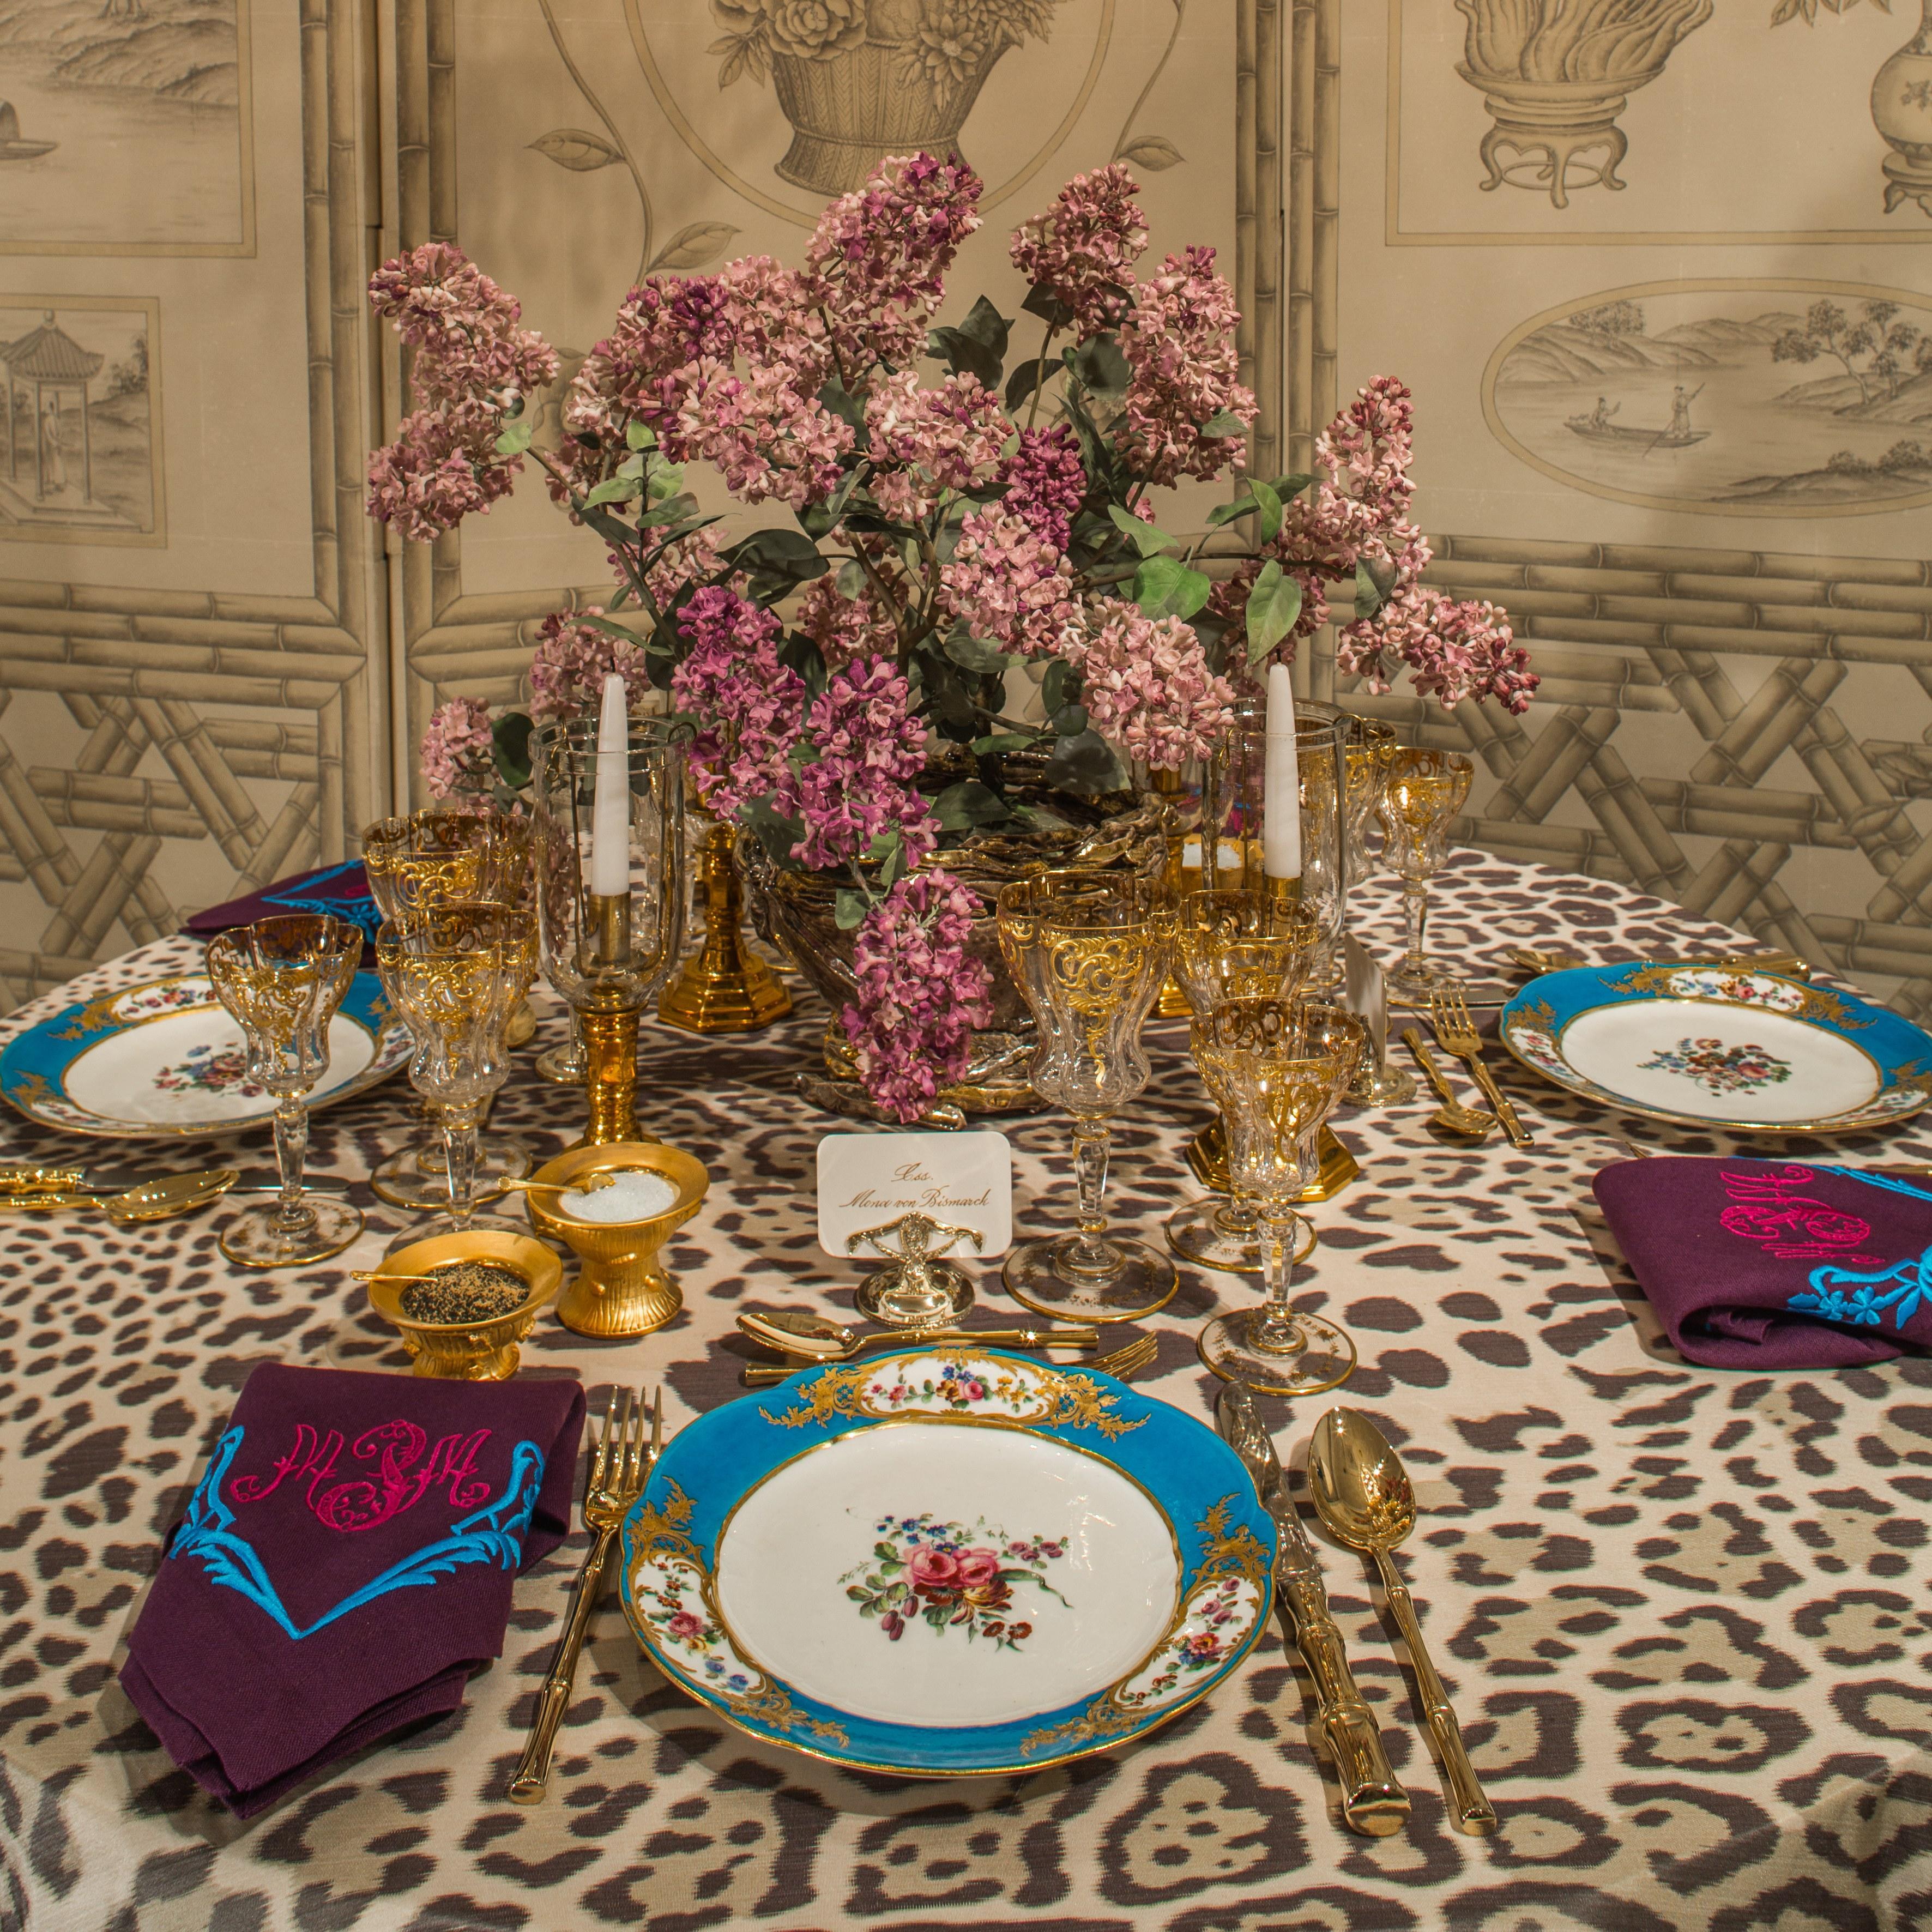 """""""I wanted it to be a little bit of Marjorie gone current and modern,"""" Papachristidis says of his table, whose pops of color stem from the floral porcelain he selected from her collection. """"So I took a neutral palette and then had Vlad [<a href=""""https://www.architecturaldigest.com/story/vladimir-kanevsky-incredible-floral-sculptures-take-over-the-hermitage-saint-petersburg?mbid=synd_yahoo_rss"""" rel=""""nofollow noopener"""" target=""""_blank"""" data-ylk=""""slk:Kanevsky"""" class=""""link rapid-noclick-resp"""">Kanevsky</a>, the master of porcelain flora] make the flowers. I felt if Marjorie was around today she'd do something fab like Vladimir, who of course is Russian. If Marjorie had known him, these flowers would have been all around Hillwood."""" Indeed, much of Papachristidis's design hinged on what Marjorie would have done if she were around today. """"I approached it as if we were collaborating,"""" he says. That included using his usual go-to sources, in addition to Kanevsky: Christopher Spitzmiller created custom gold salt cellars, Leontine Linens embroidered napkins, and Papachristidis pulled fabric from his own personal collection to serve as the tablecloth. There was a fair bit of fantasy involved too, though: the guests noted on Post's gold-plated place card holders? Post, Pauline de Rothschild, the Duchess of Windsor, and Mona von Bismarck. """"My gals!"""" exclaims Papachristidis gleefully. """"I mean, that's a pretty good group, right?"""""""